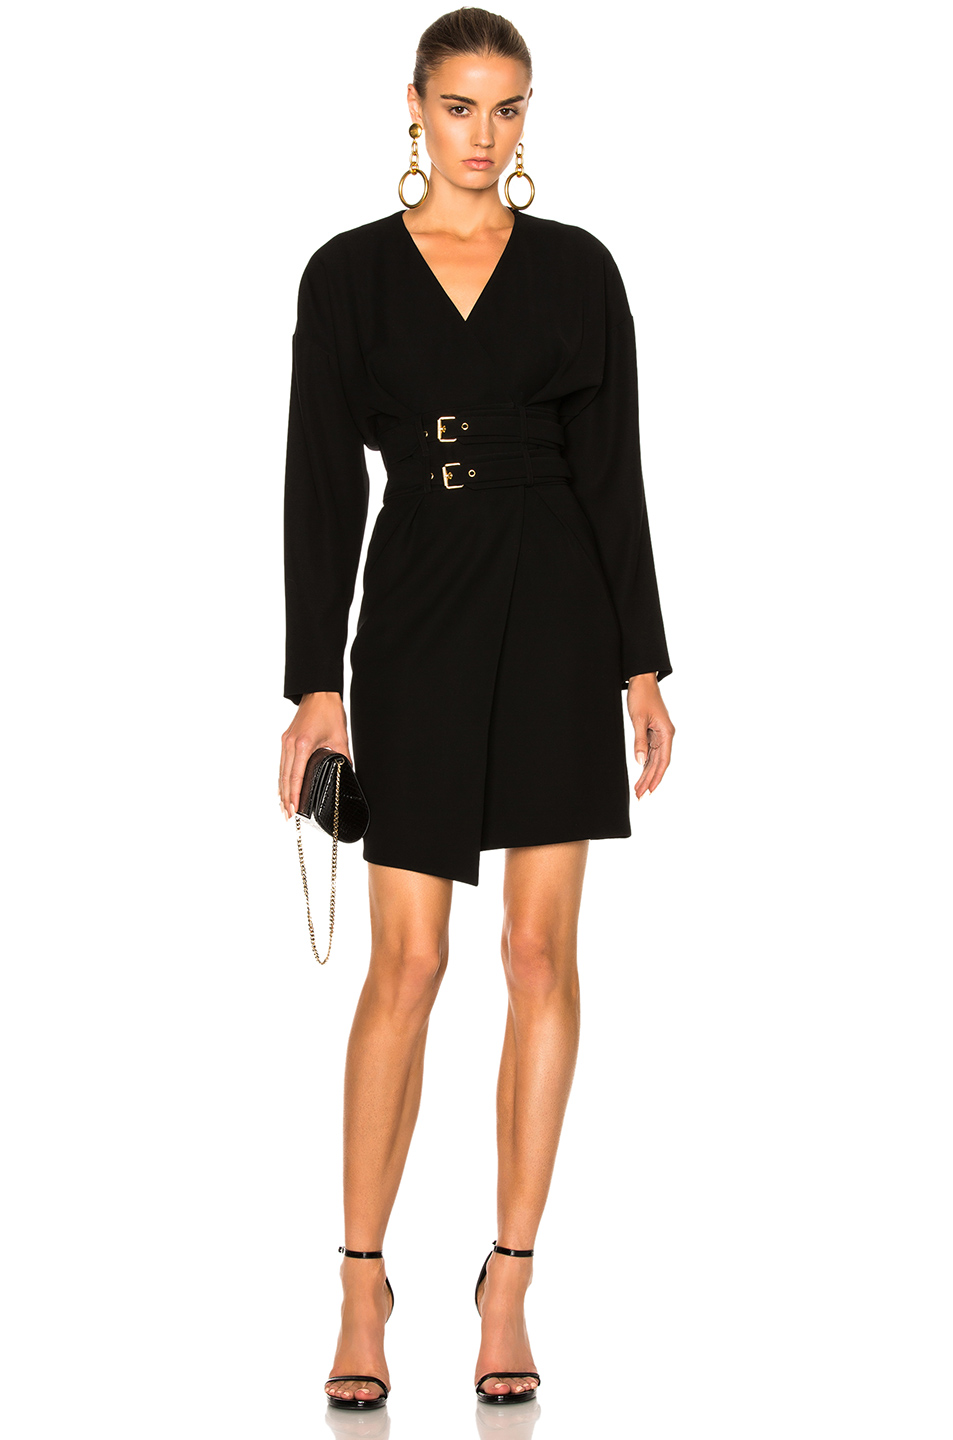 Alexandre Vauthier Belted Wrap Dress in Black